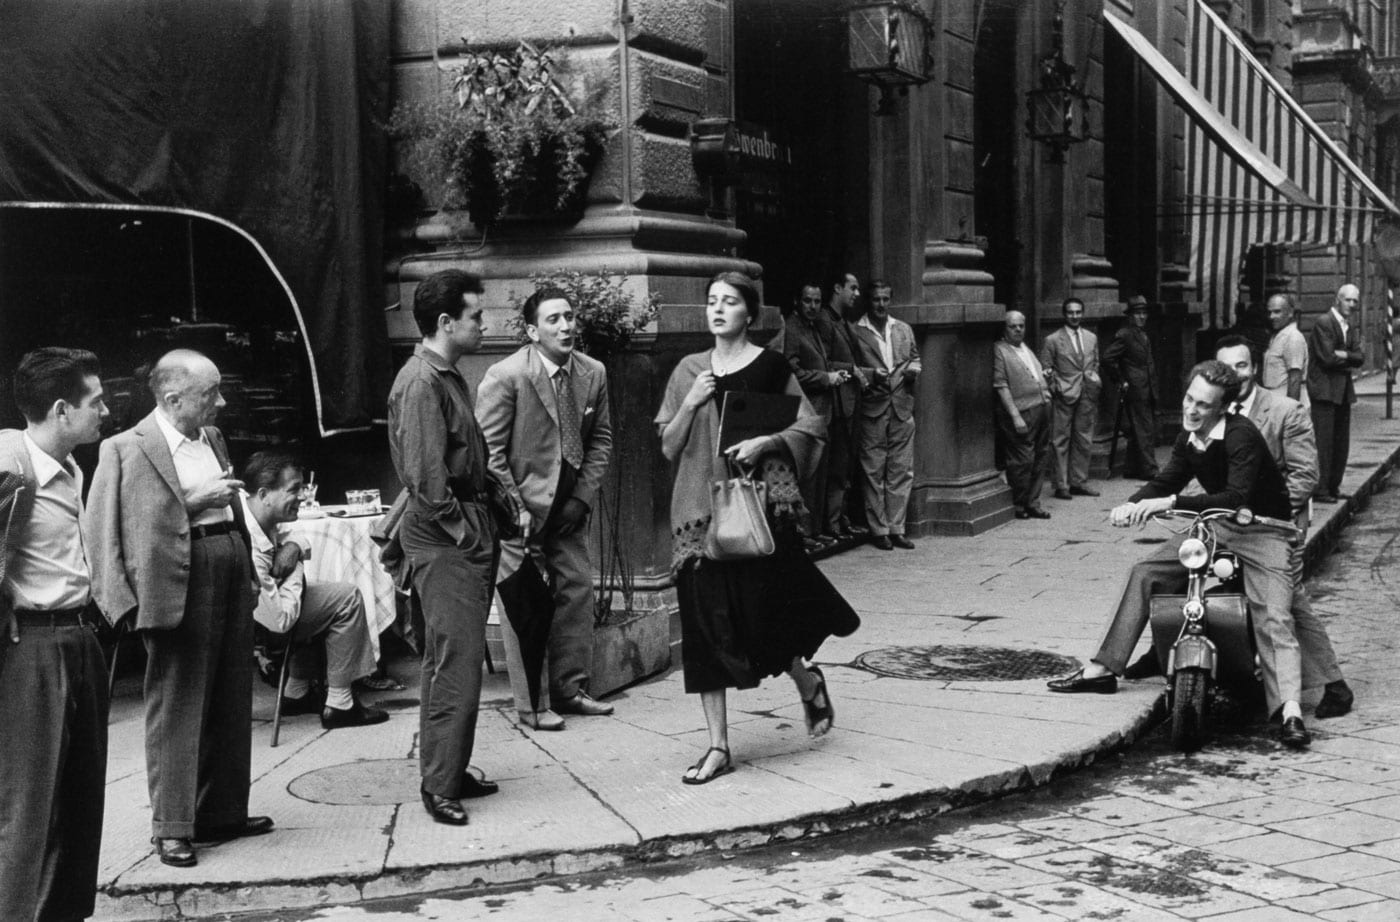 Ruth Orkin, An American Girl in Italy, Florence